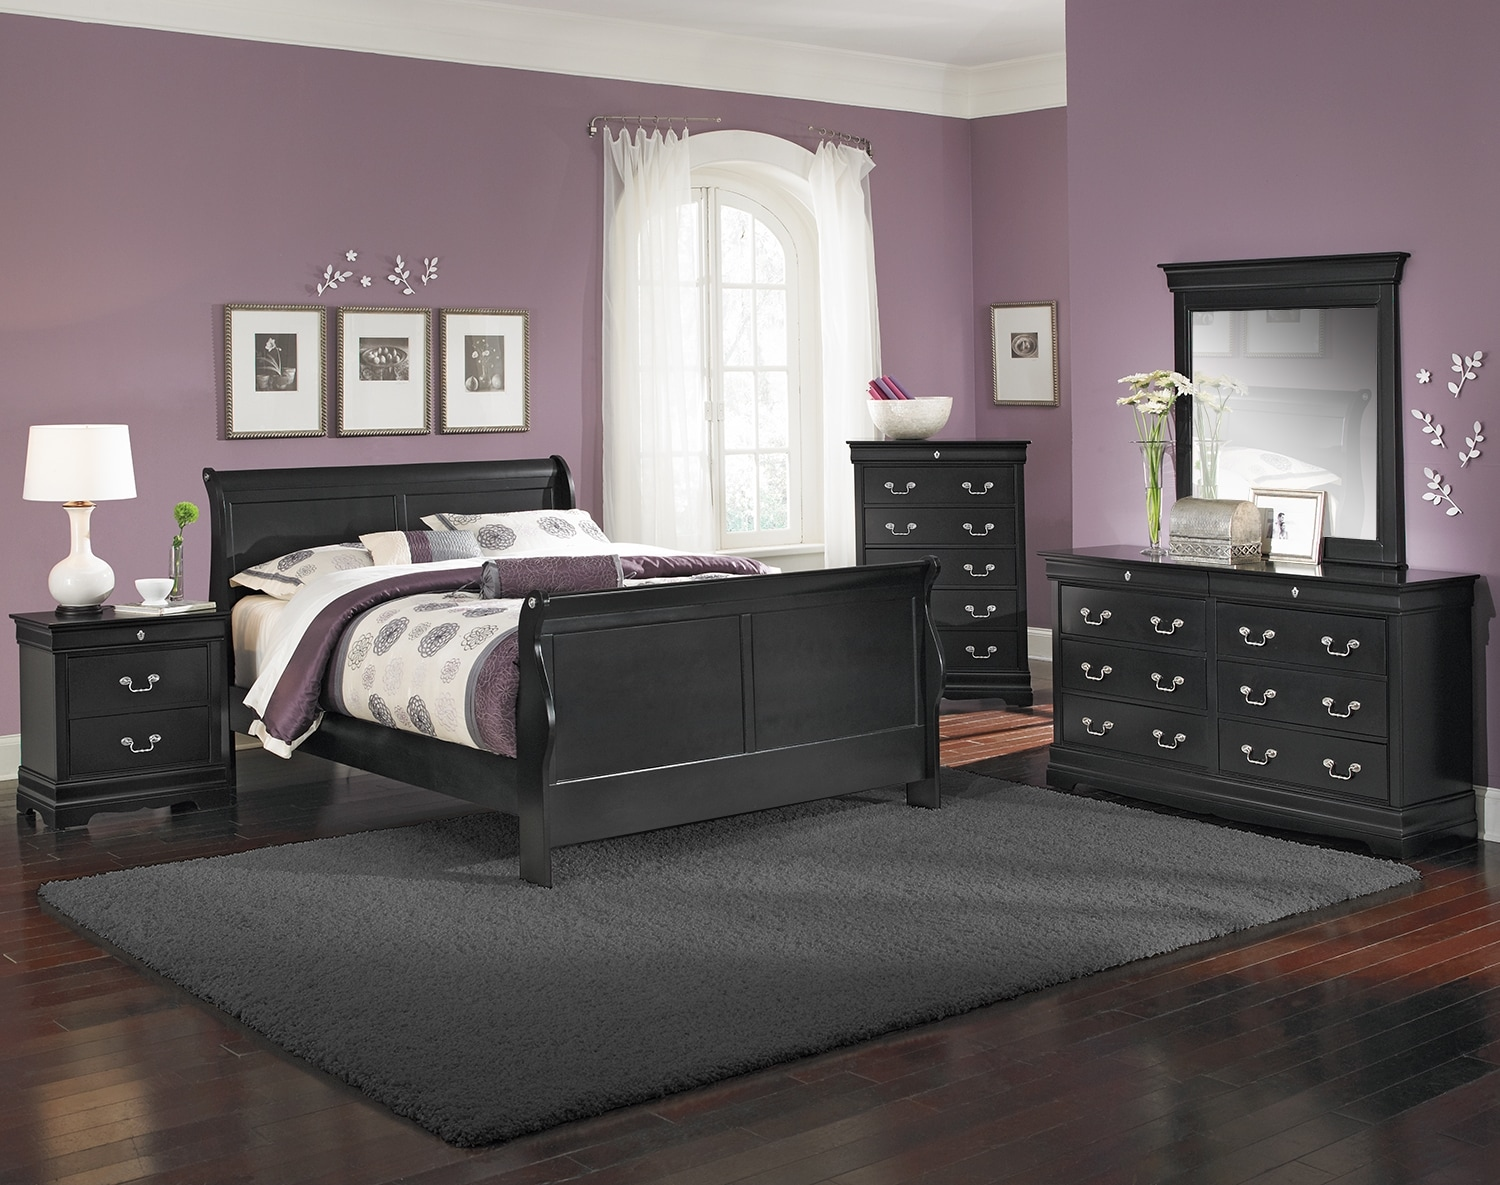 Kids Furniture - The Avignon II Black Collection - Twin Bed